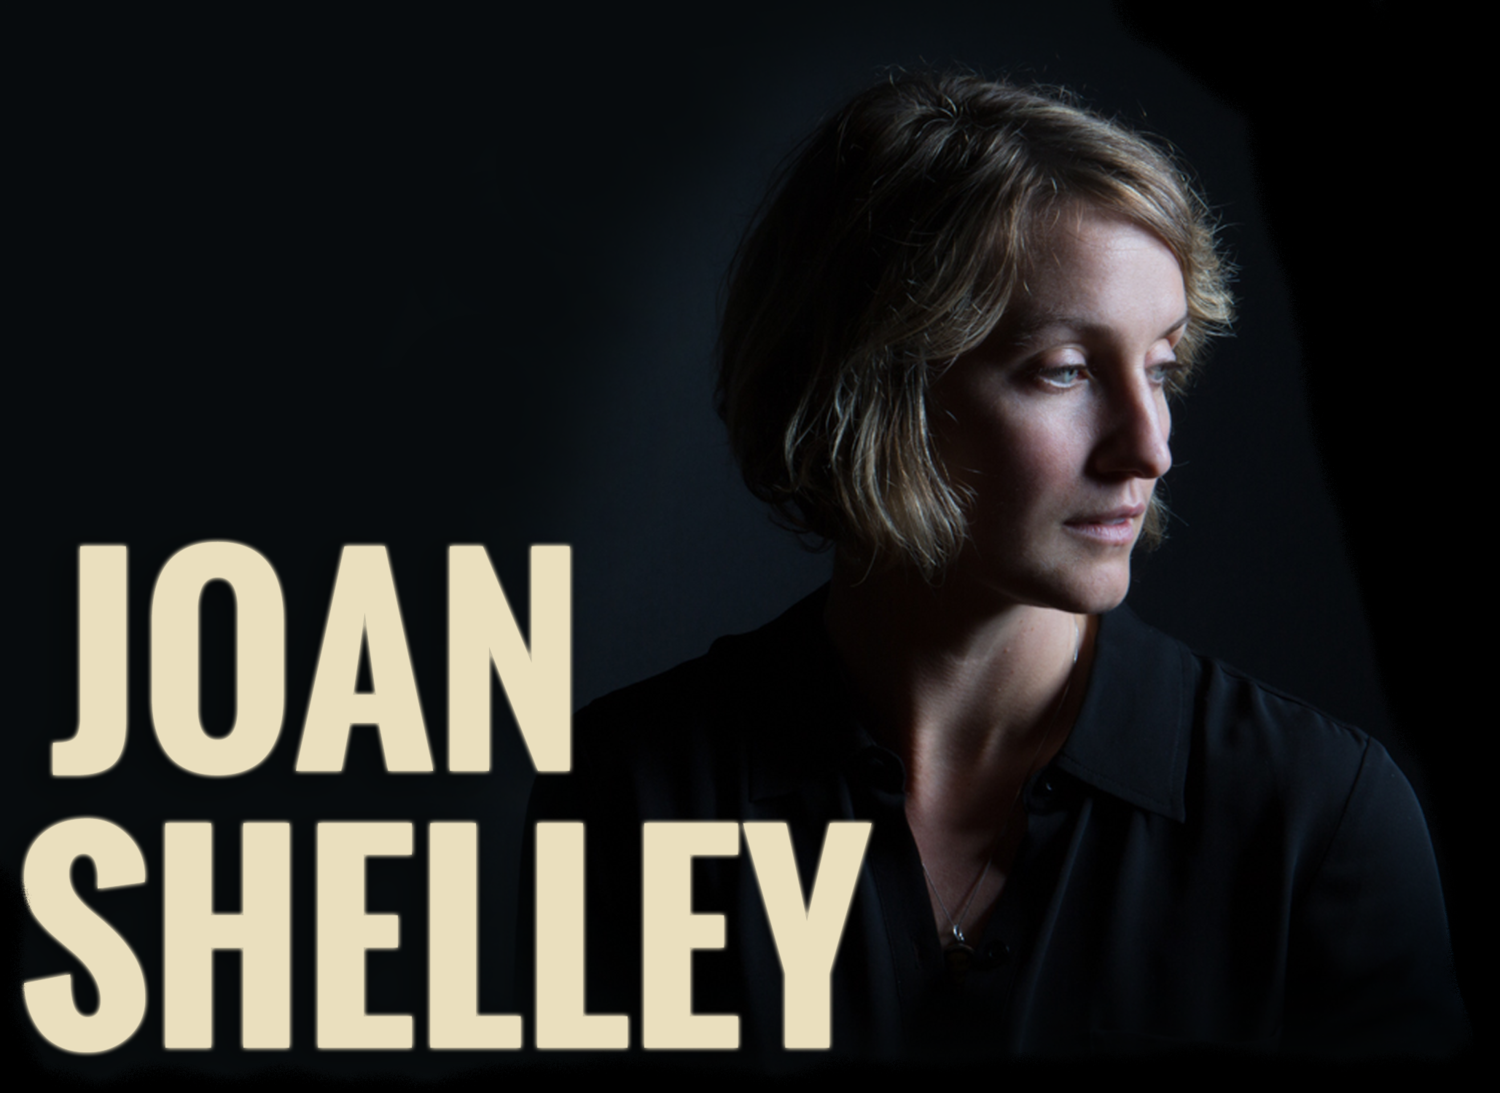 JOAN SHELLEY